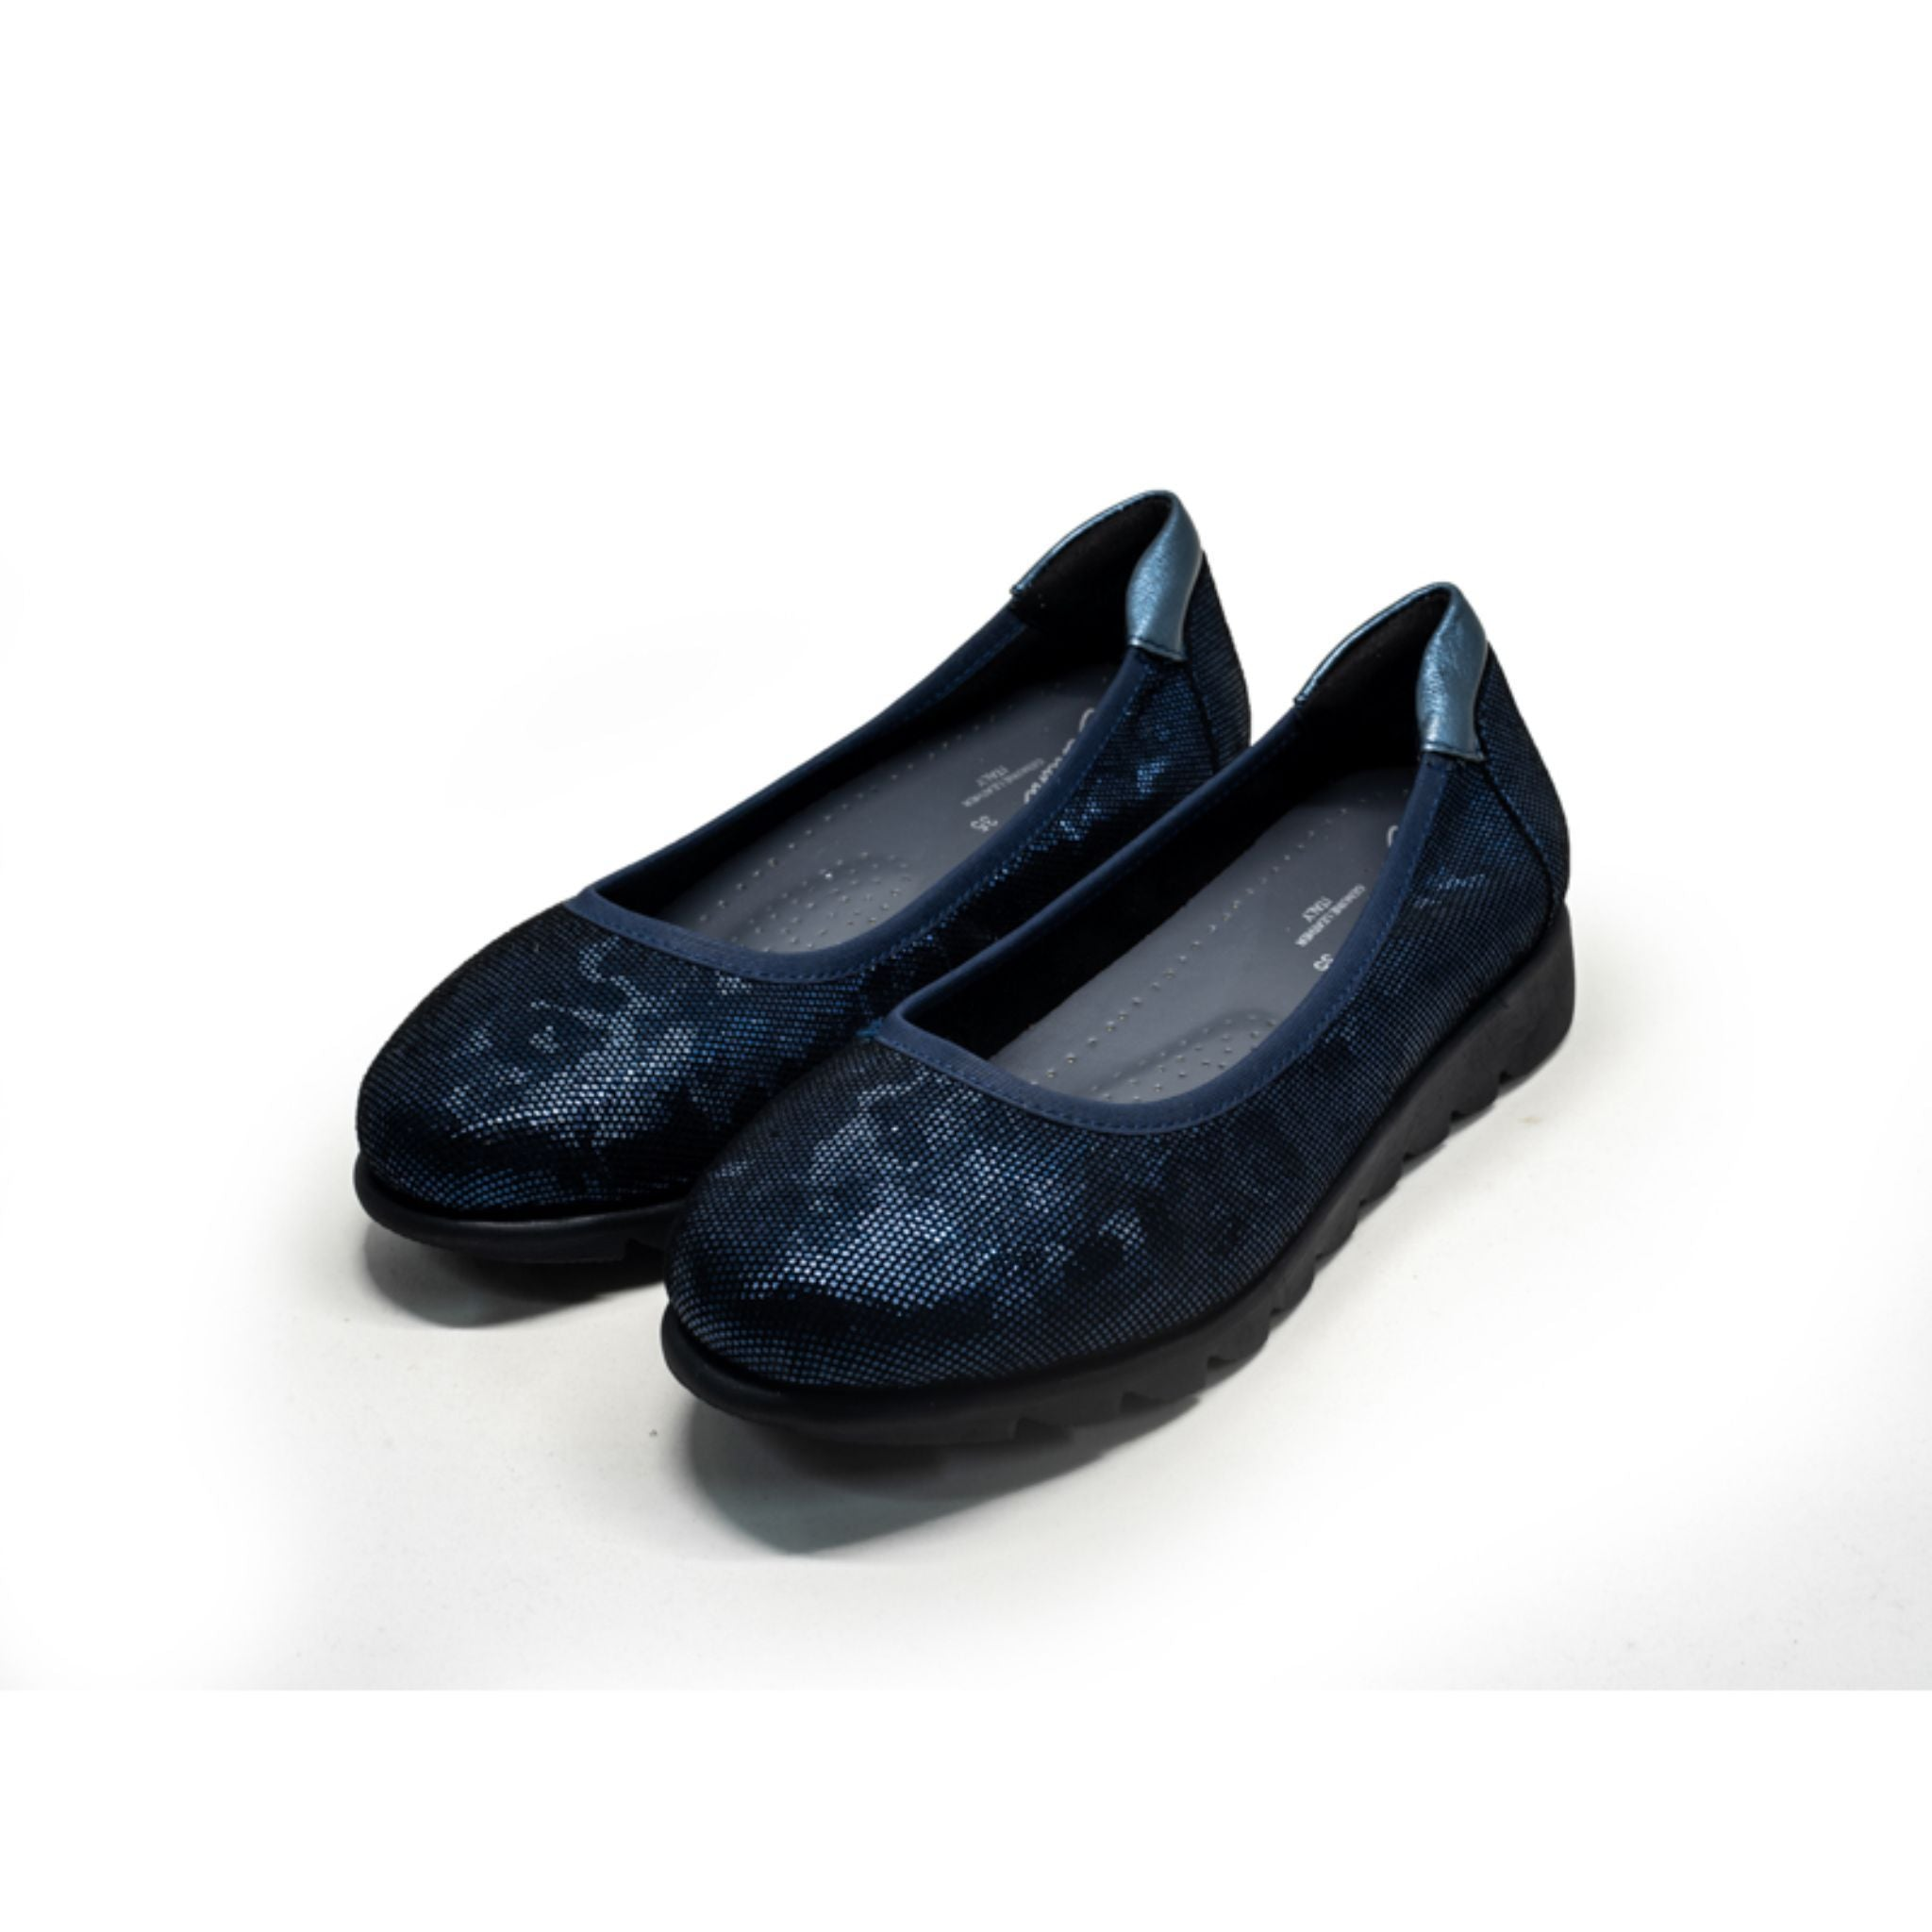 Barani Textured Leather Pumps Ballet Flats 8938-220 Navy